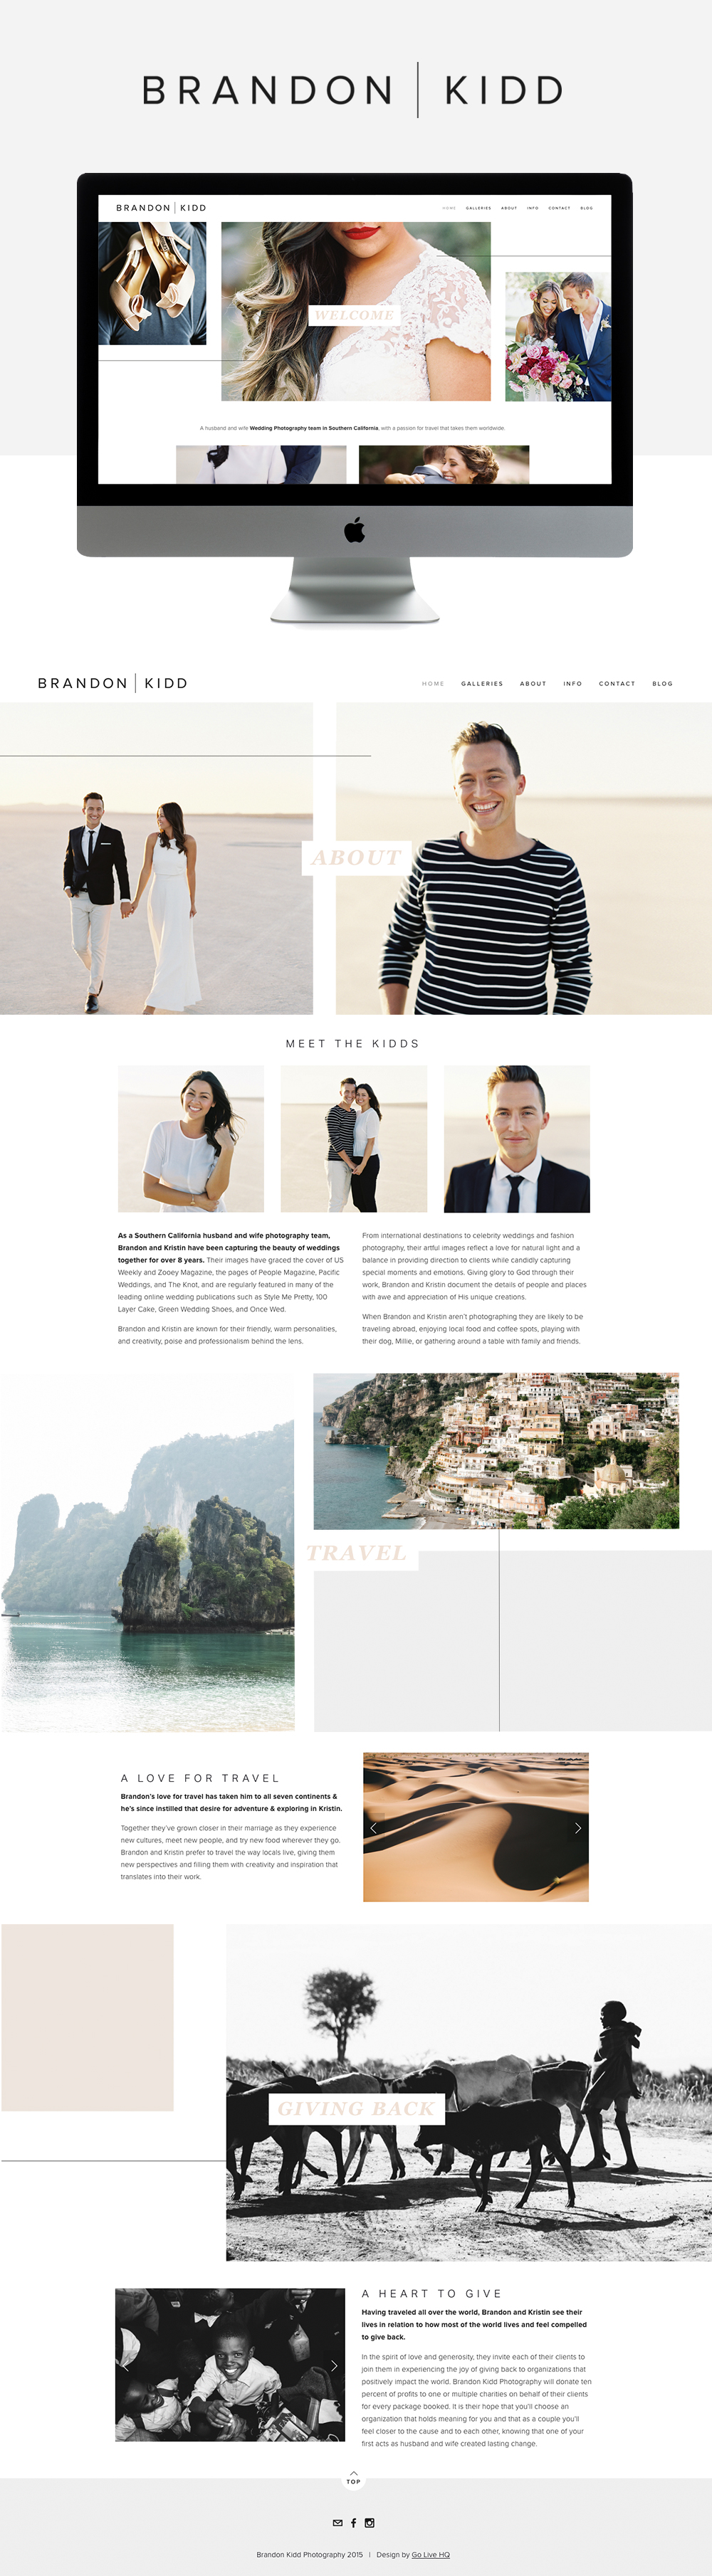 clean modern photography website design  |  by GOLIVEHQ.CO